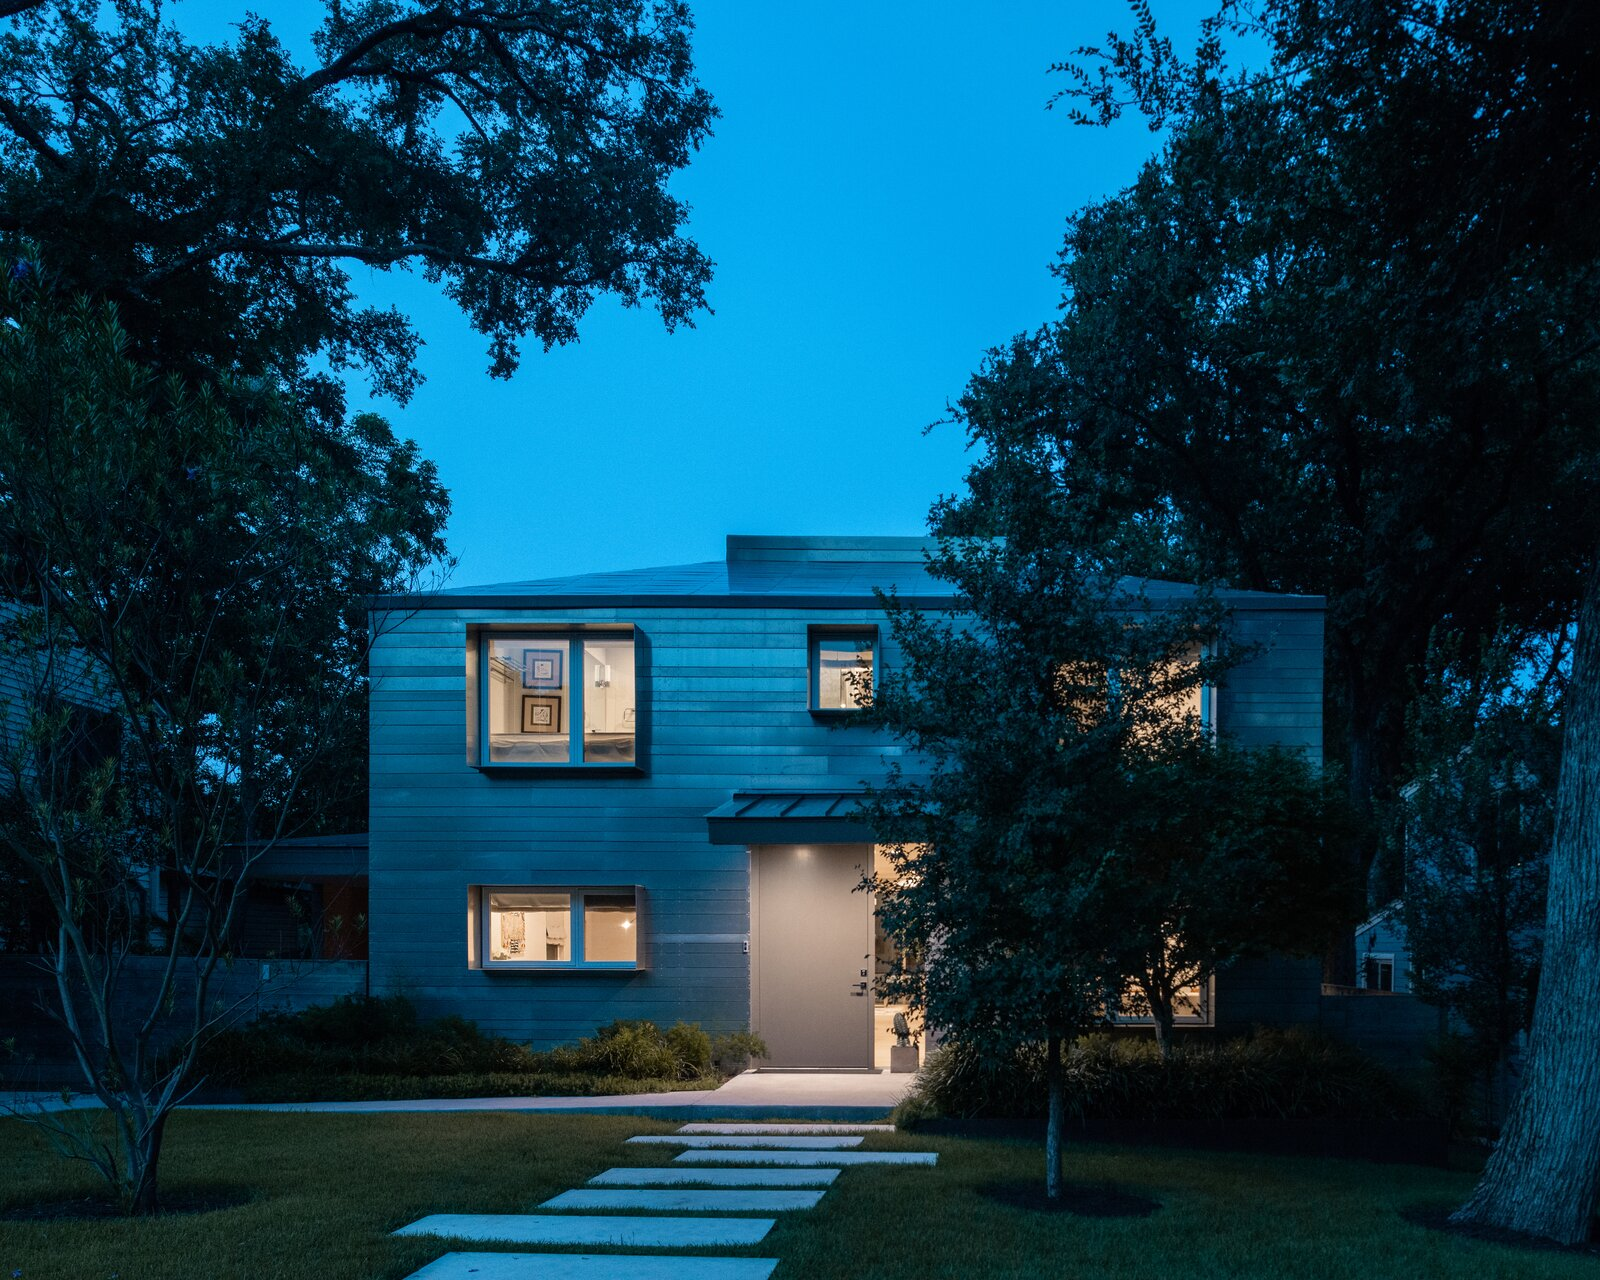 Clearview Residence by Webber + Studio, Architects